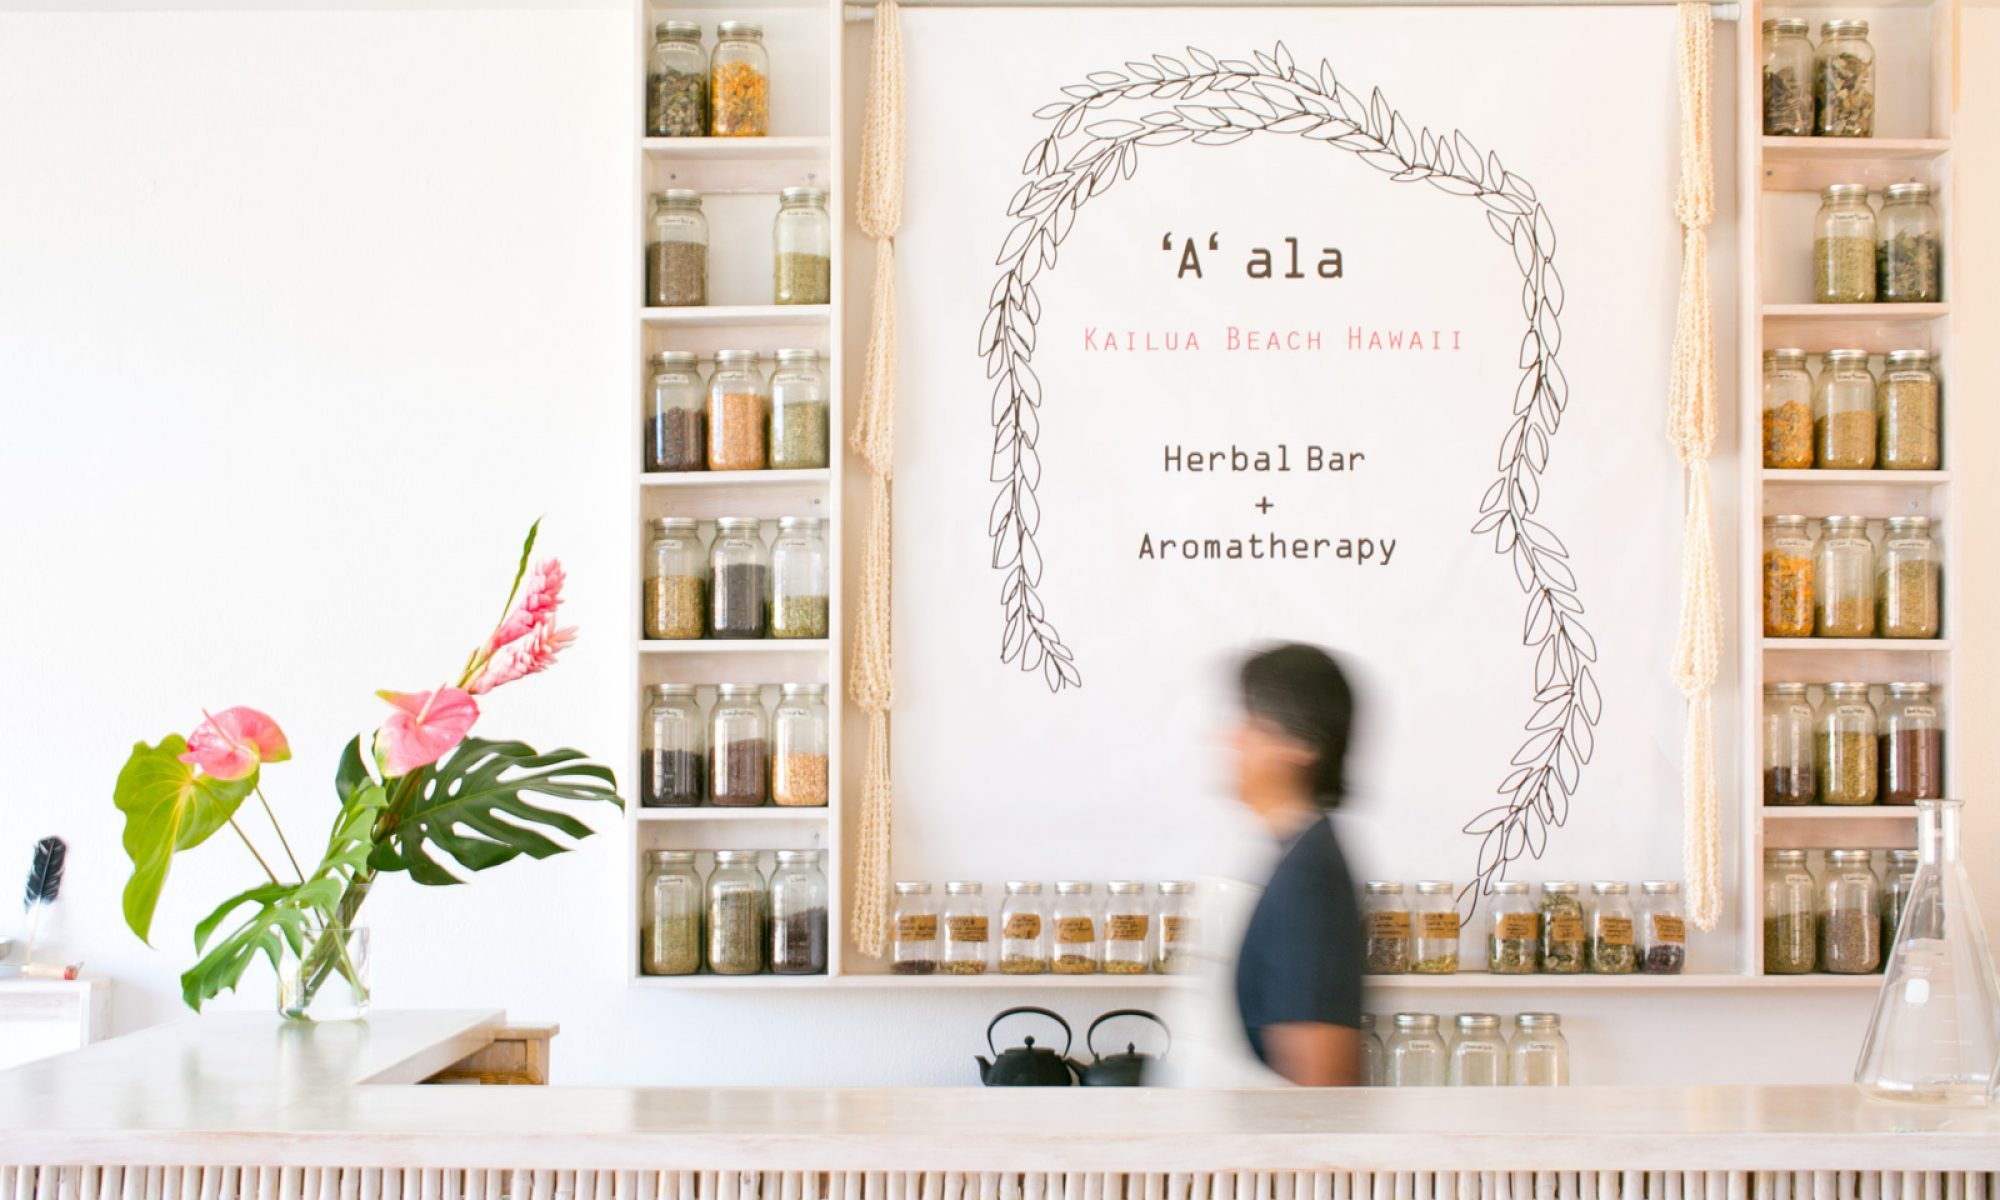 'A' ala Herbal Bar + Aromatherapy